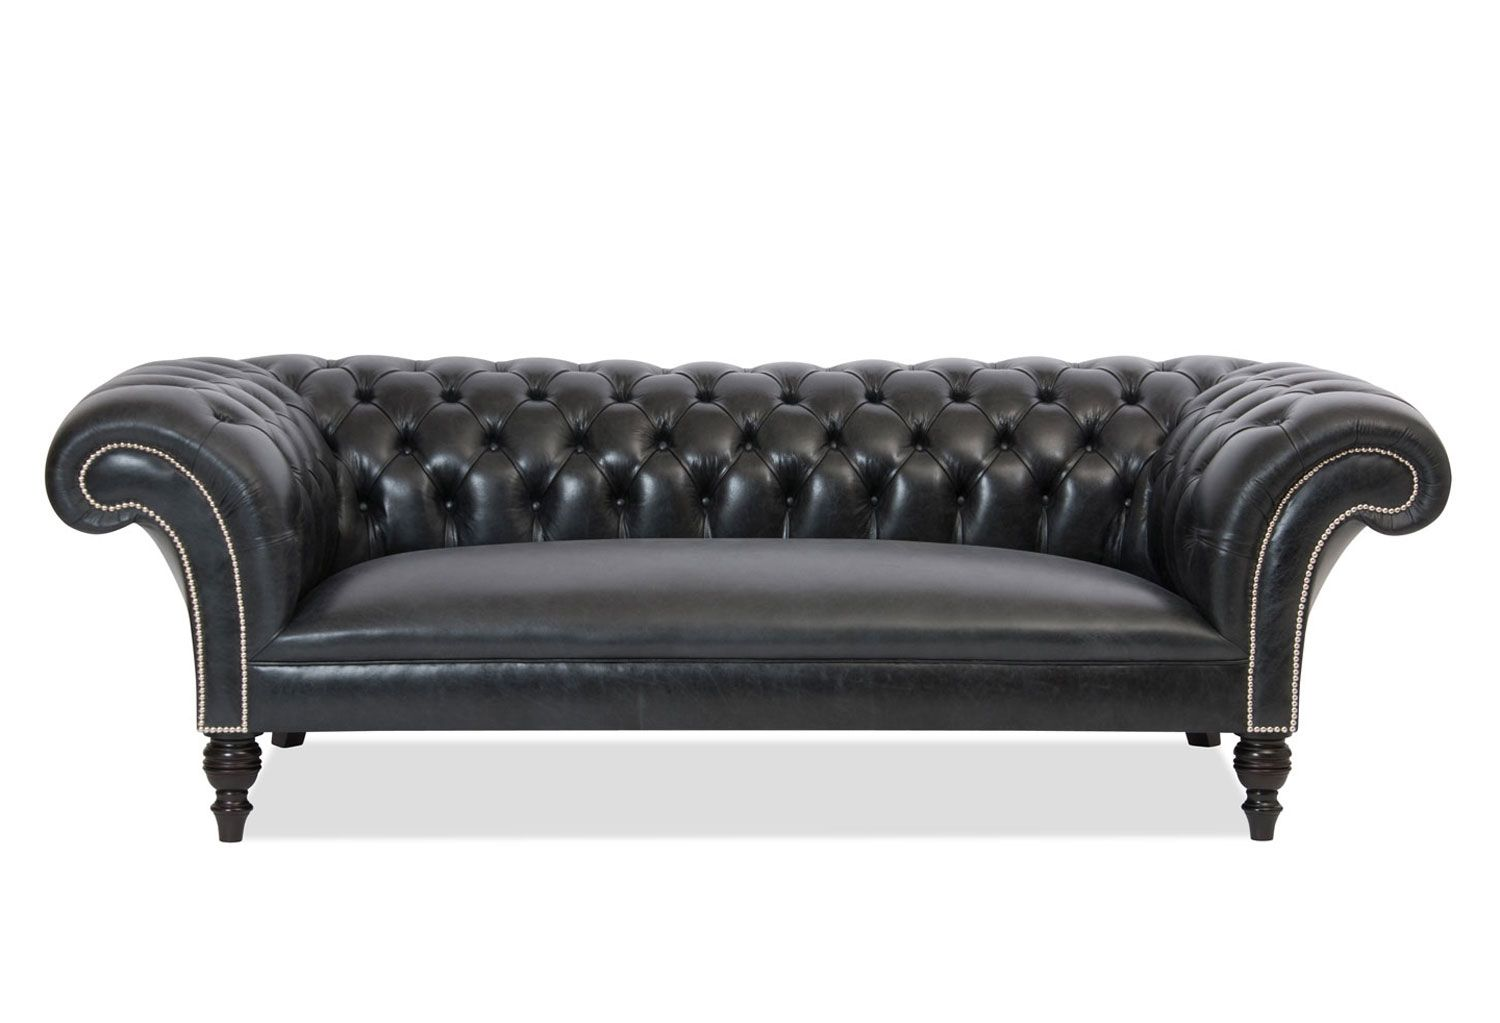 victorian chesterfield sofa westwick. Black Bedroom Furniture Sets. Home Design Ideas